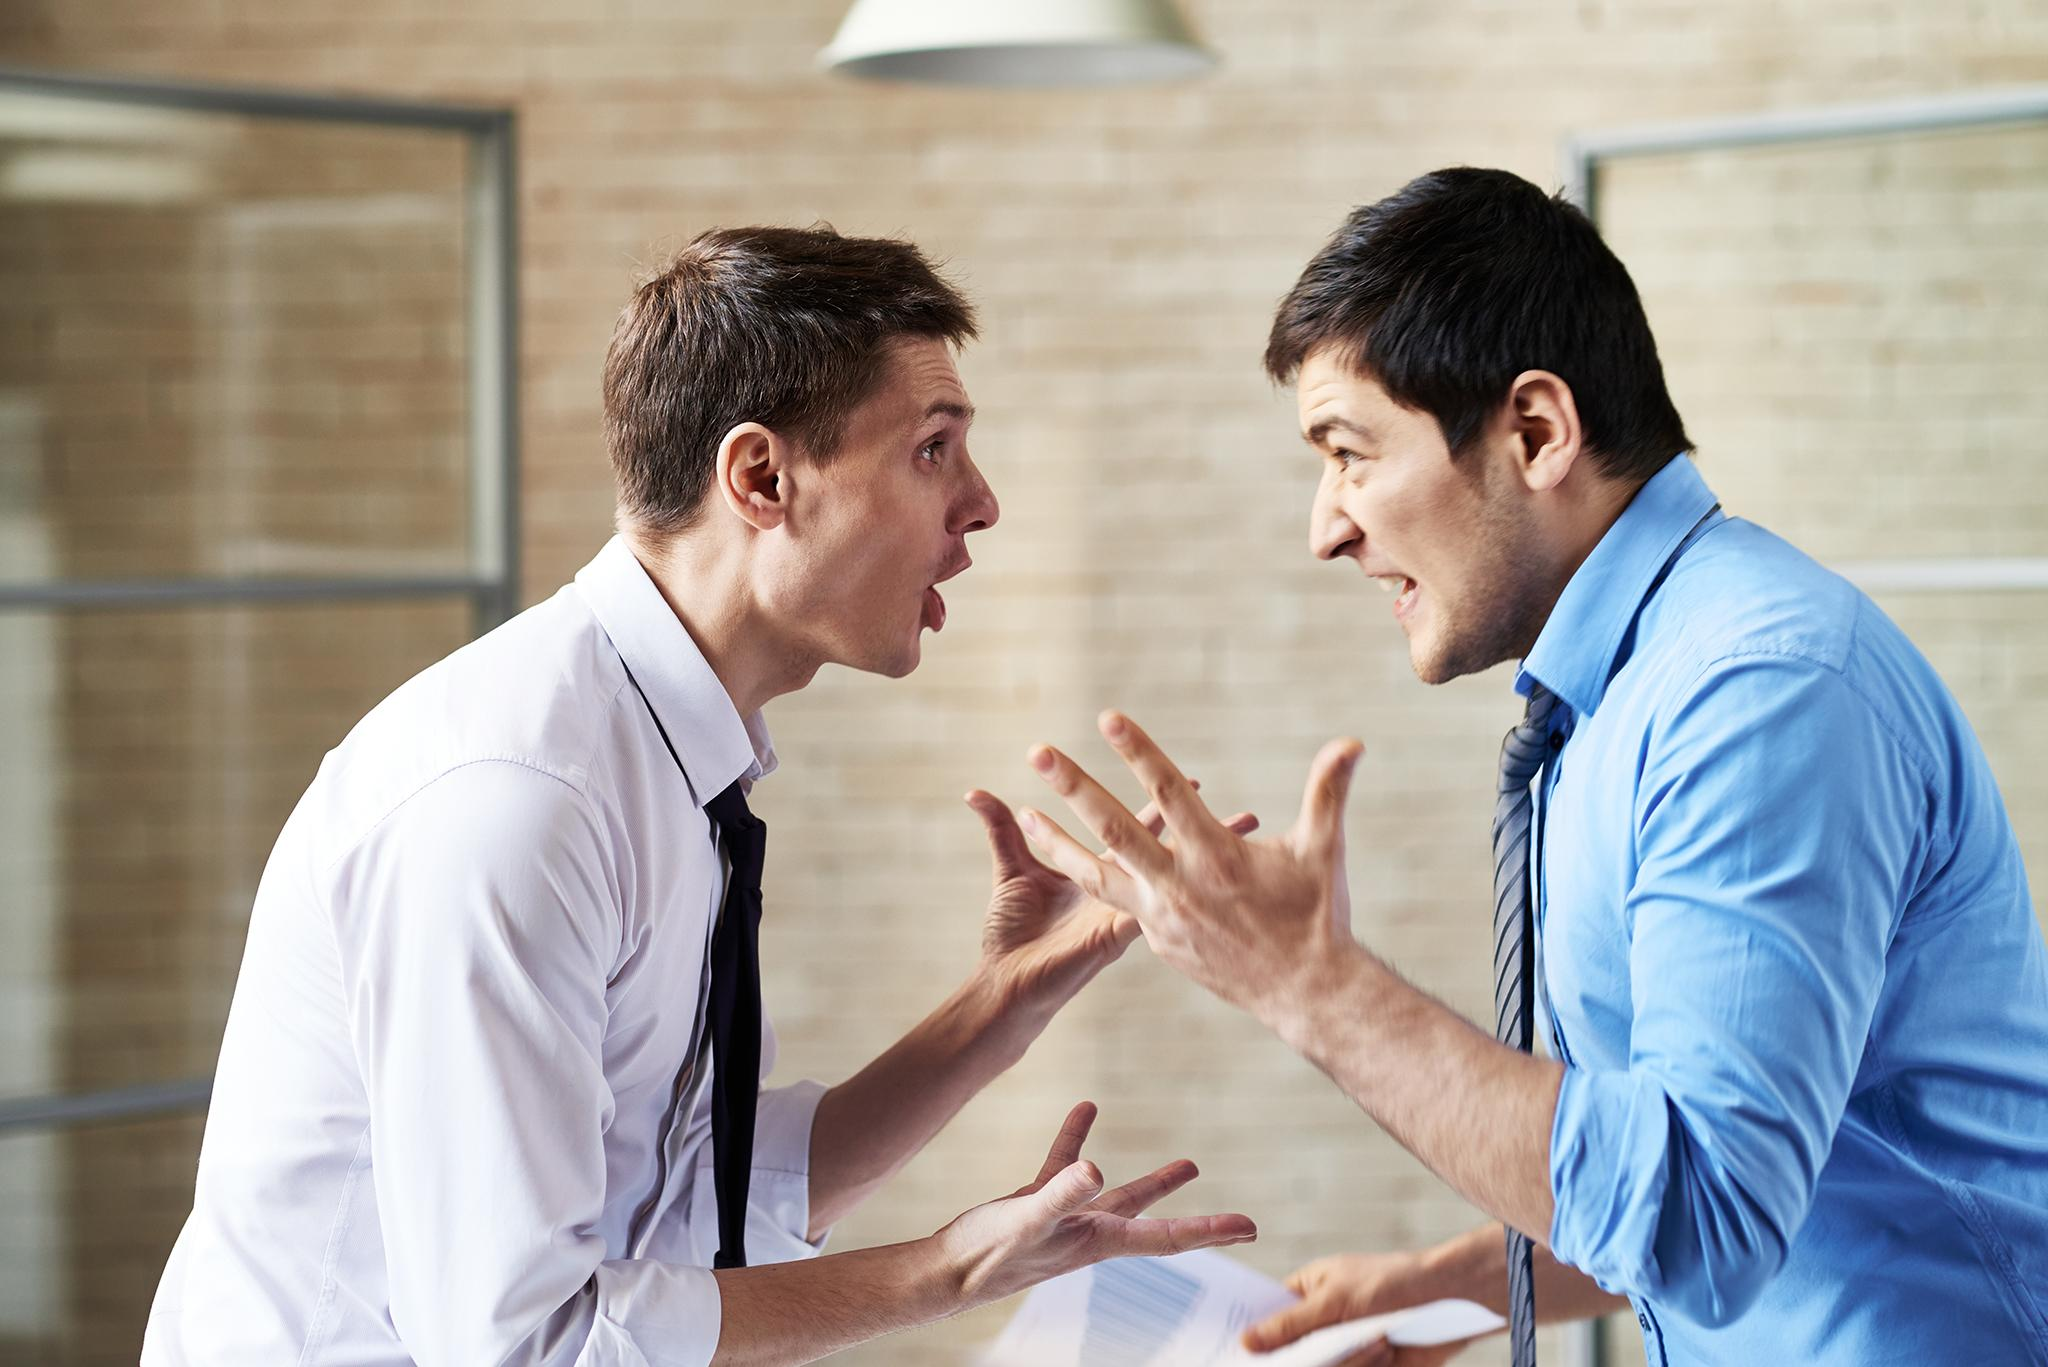 Science says these seven tactics will help you win any argument